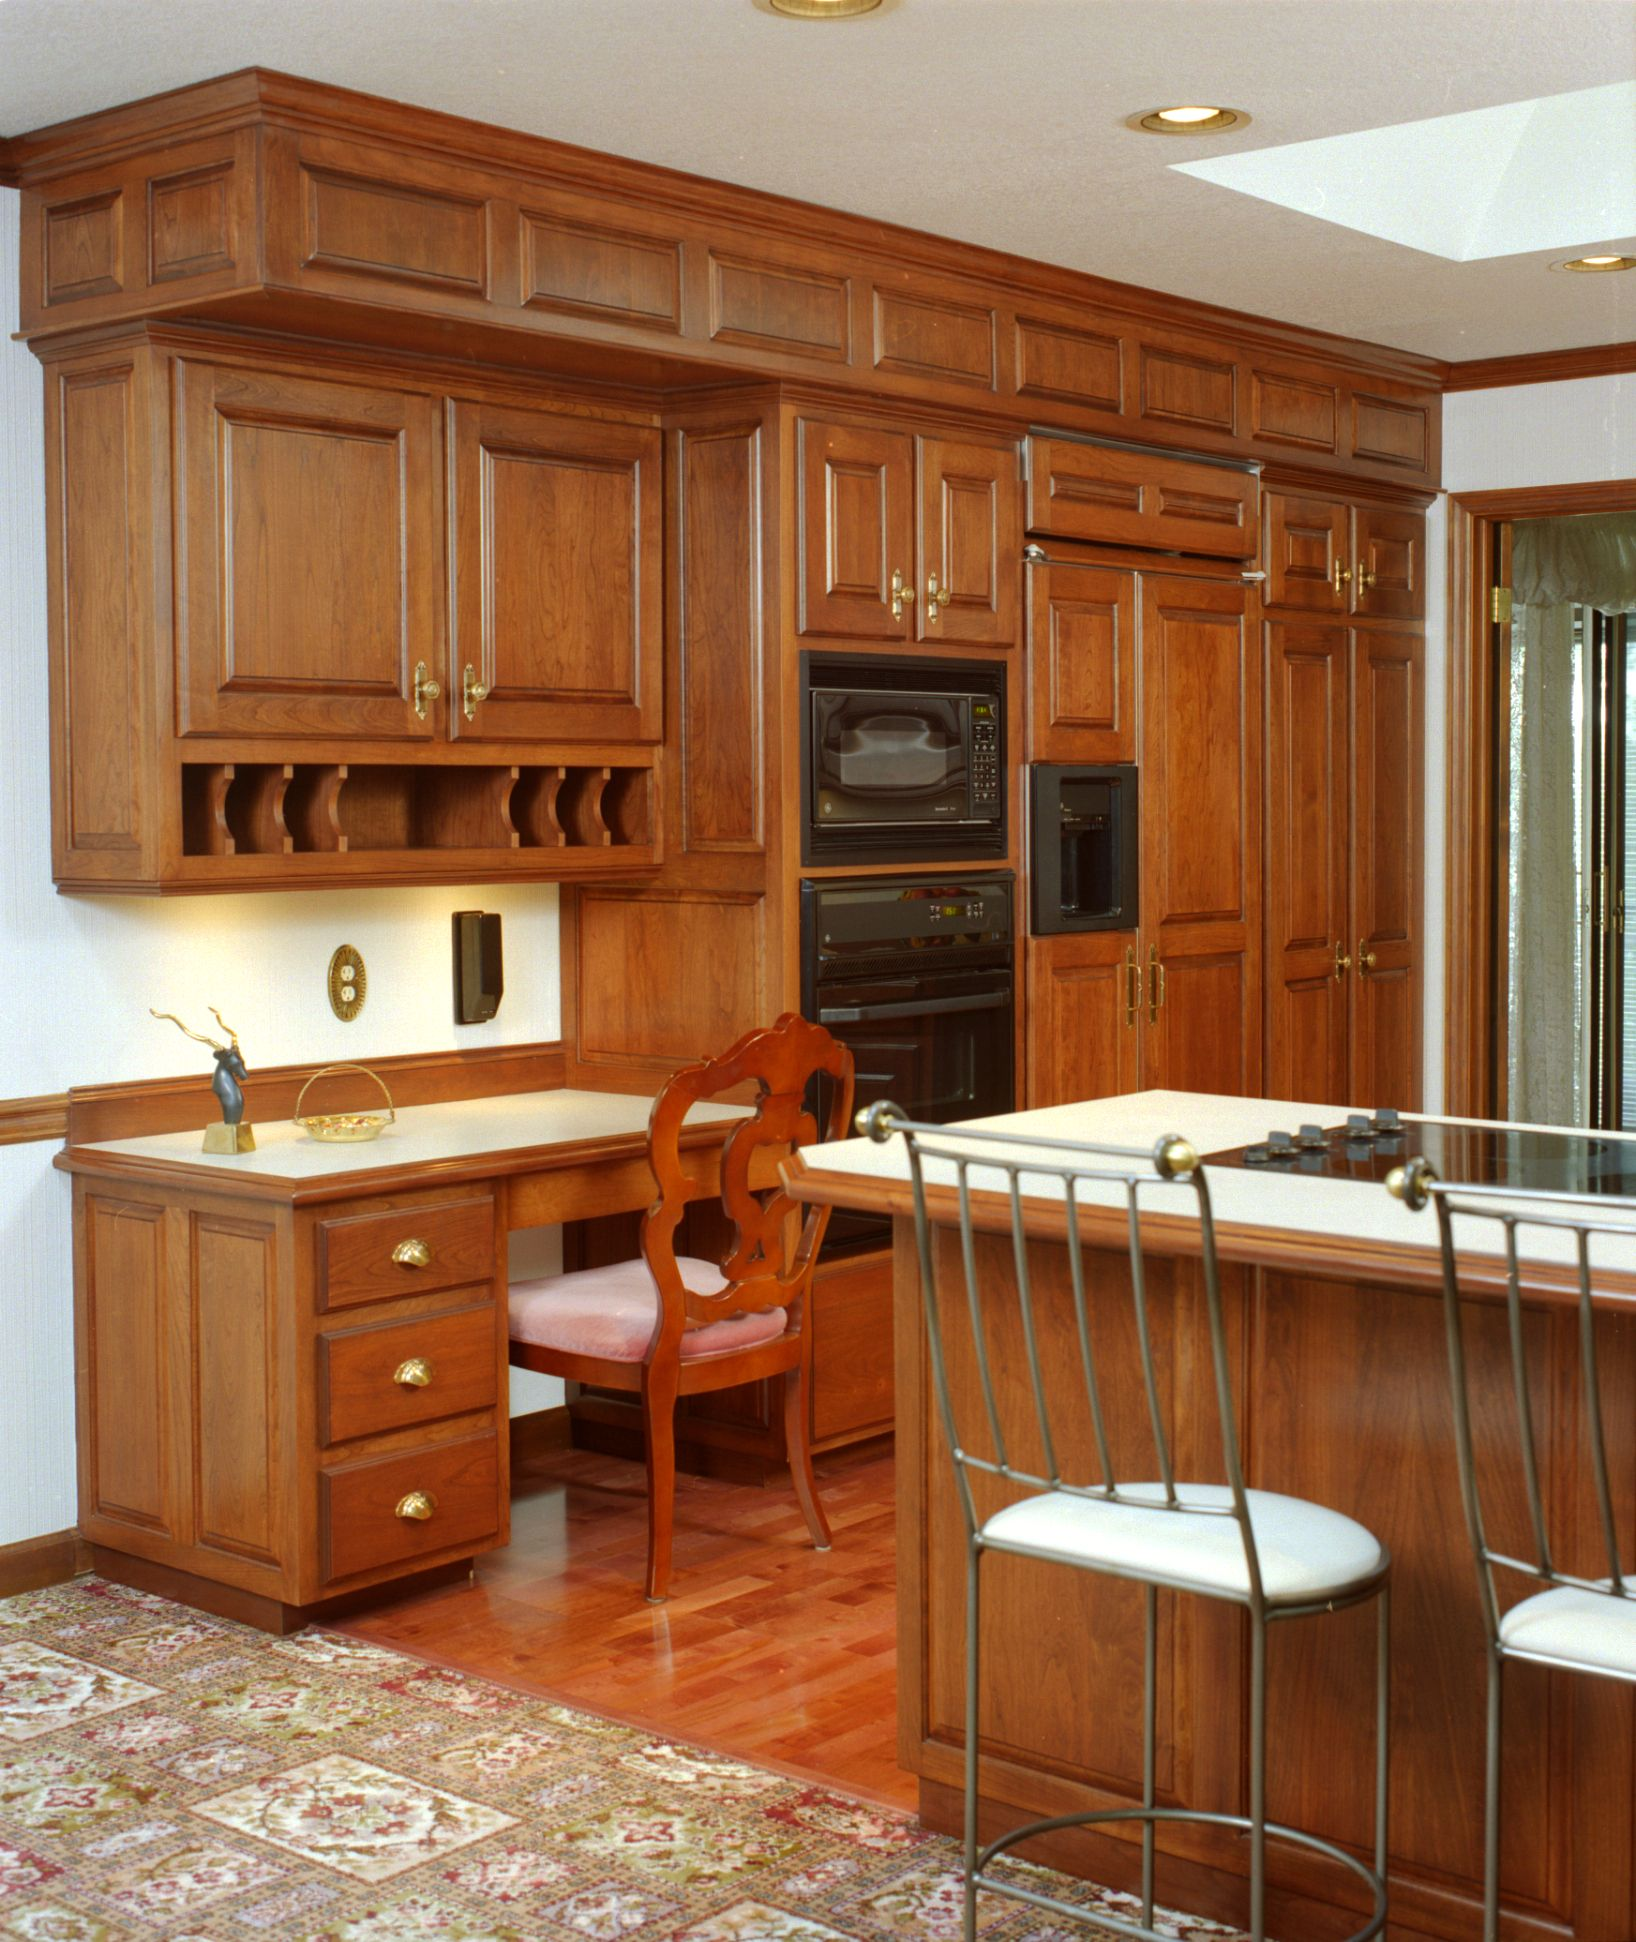 Best Traditional Style Kitchen With Detailed Raised Paneled 400 x 300